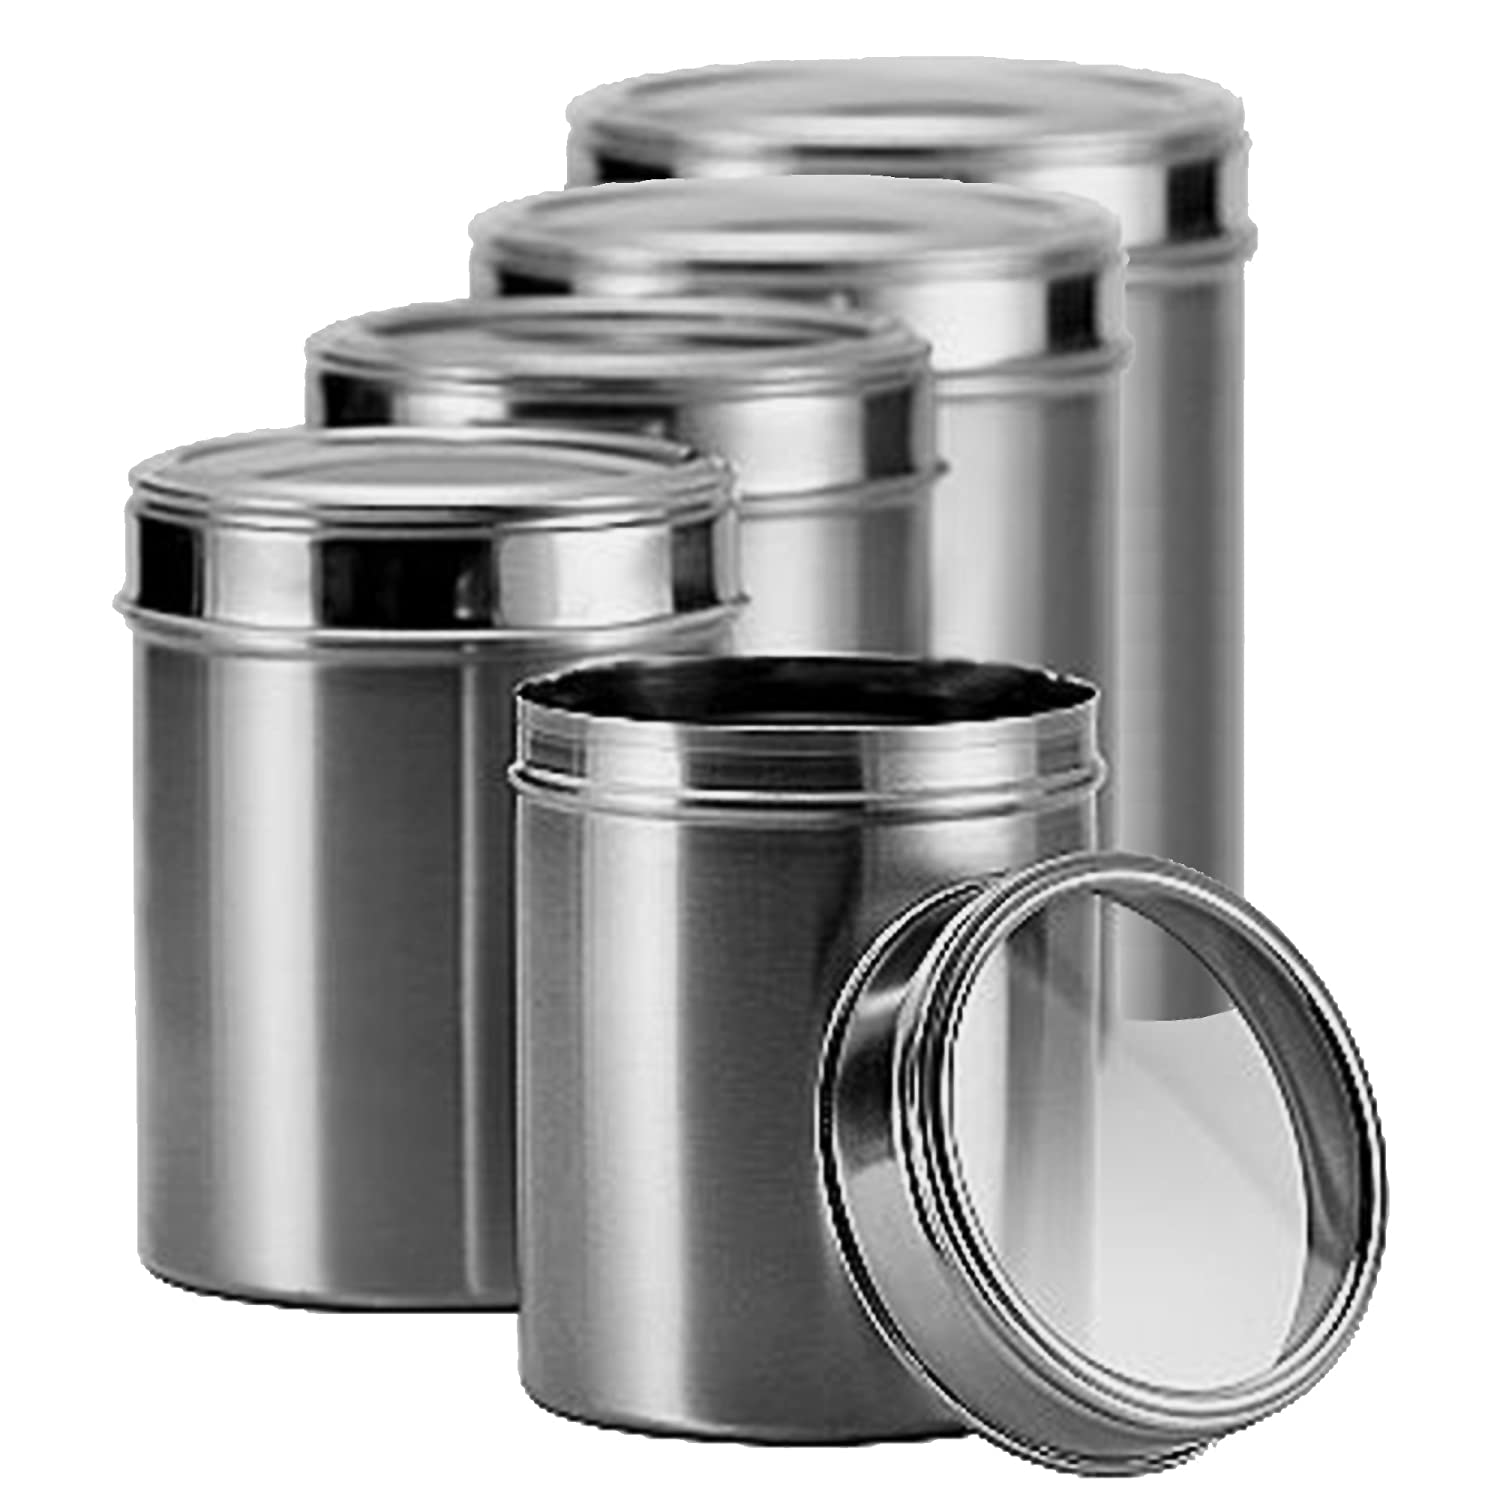 Brand new matbah 5 piece stainless steel canister set for Kitchen set vessels